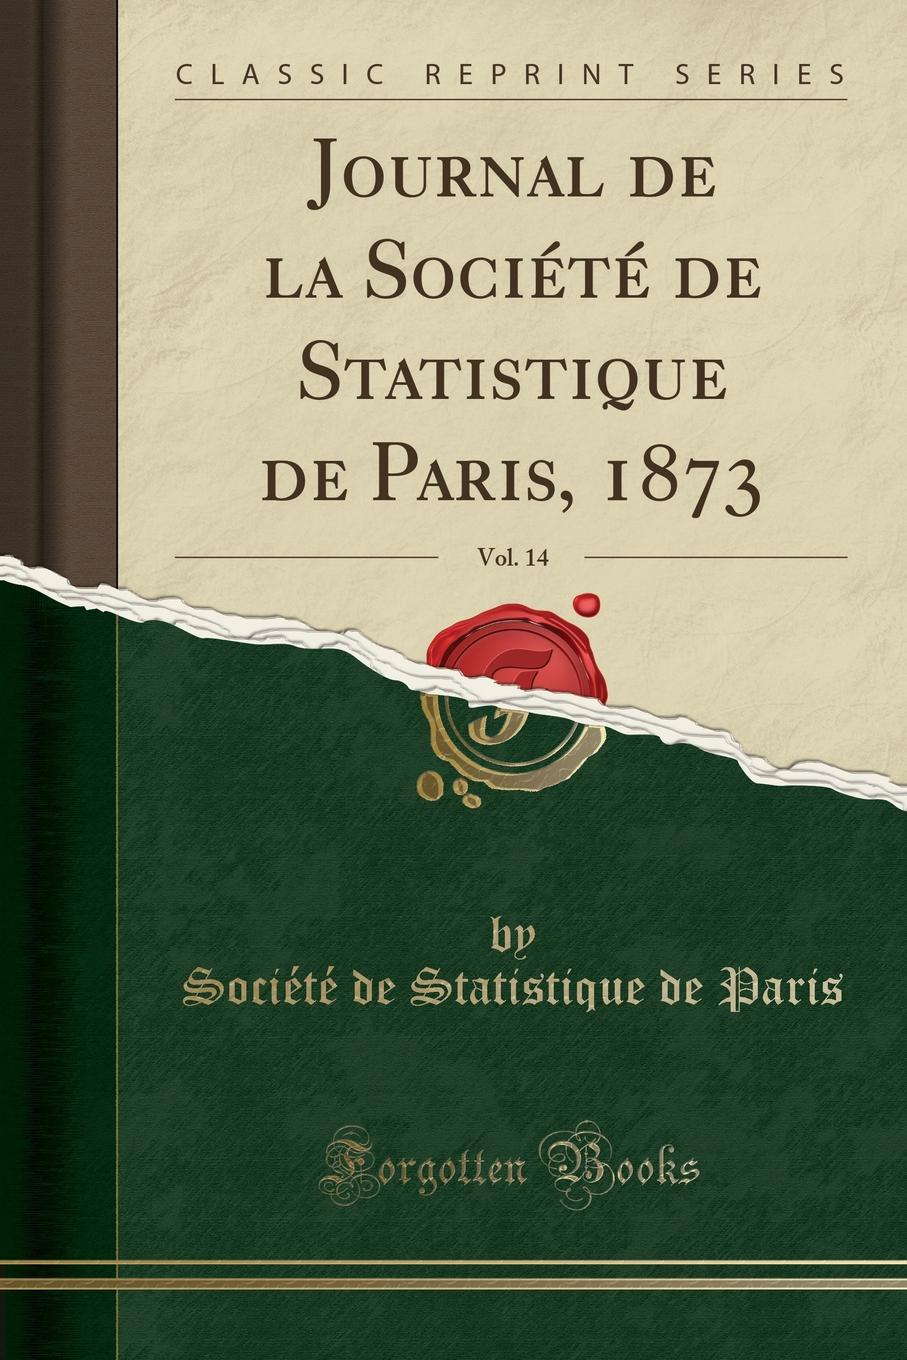 Journal de la Societe de Statistique de Paris, 1873, Vol. 14 (Classic Reprint) Excerpt from Journal de la SociР?tР? de Statistique de Paris, 1873...